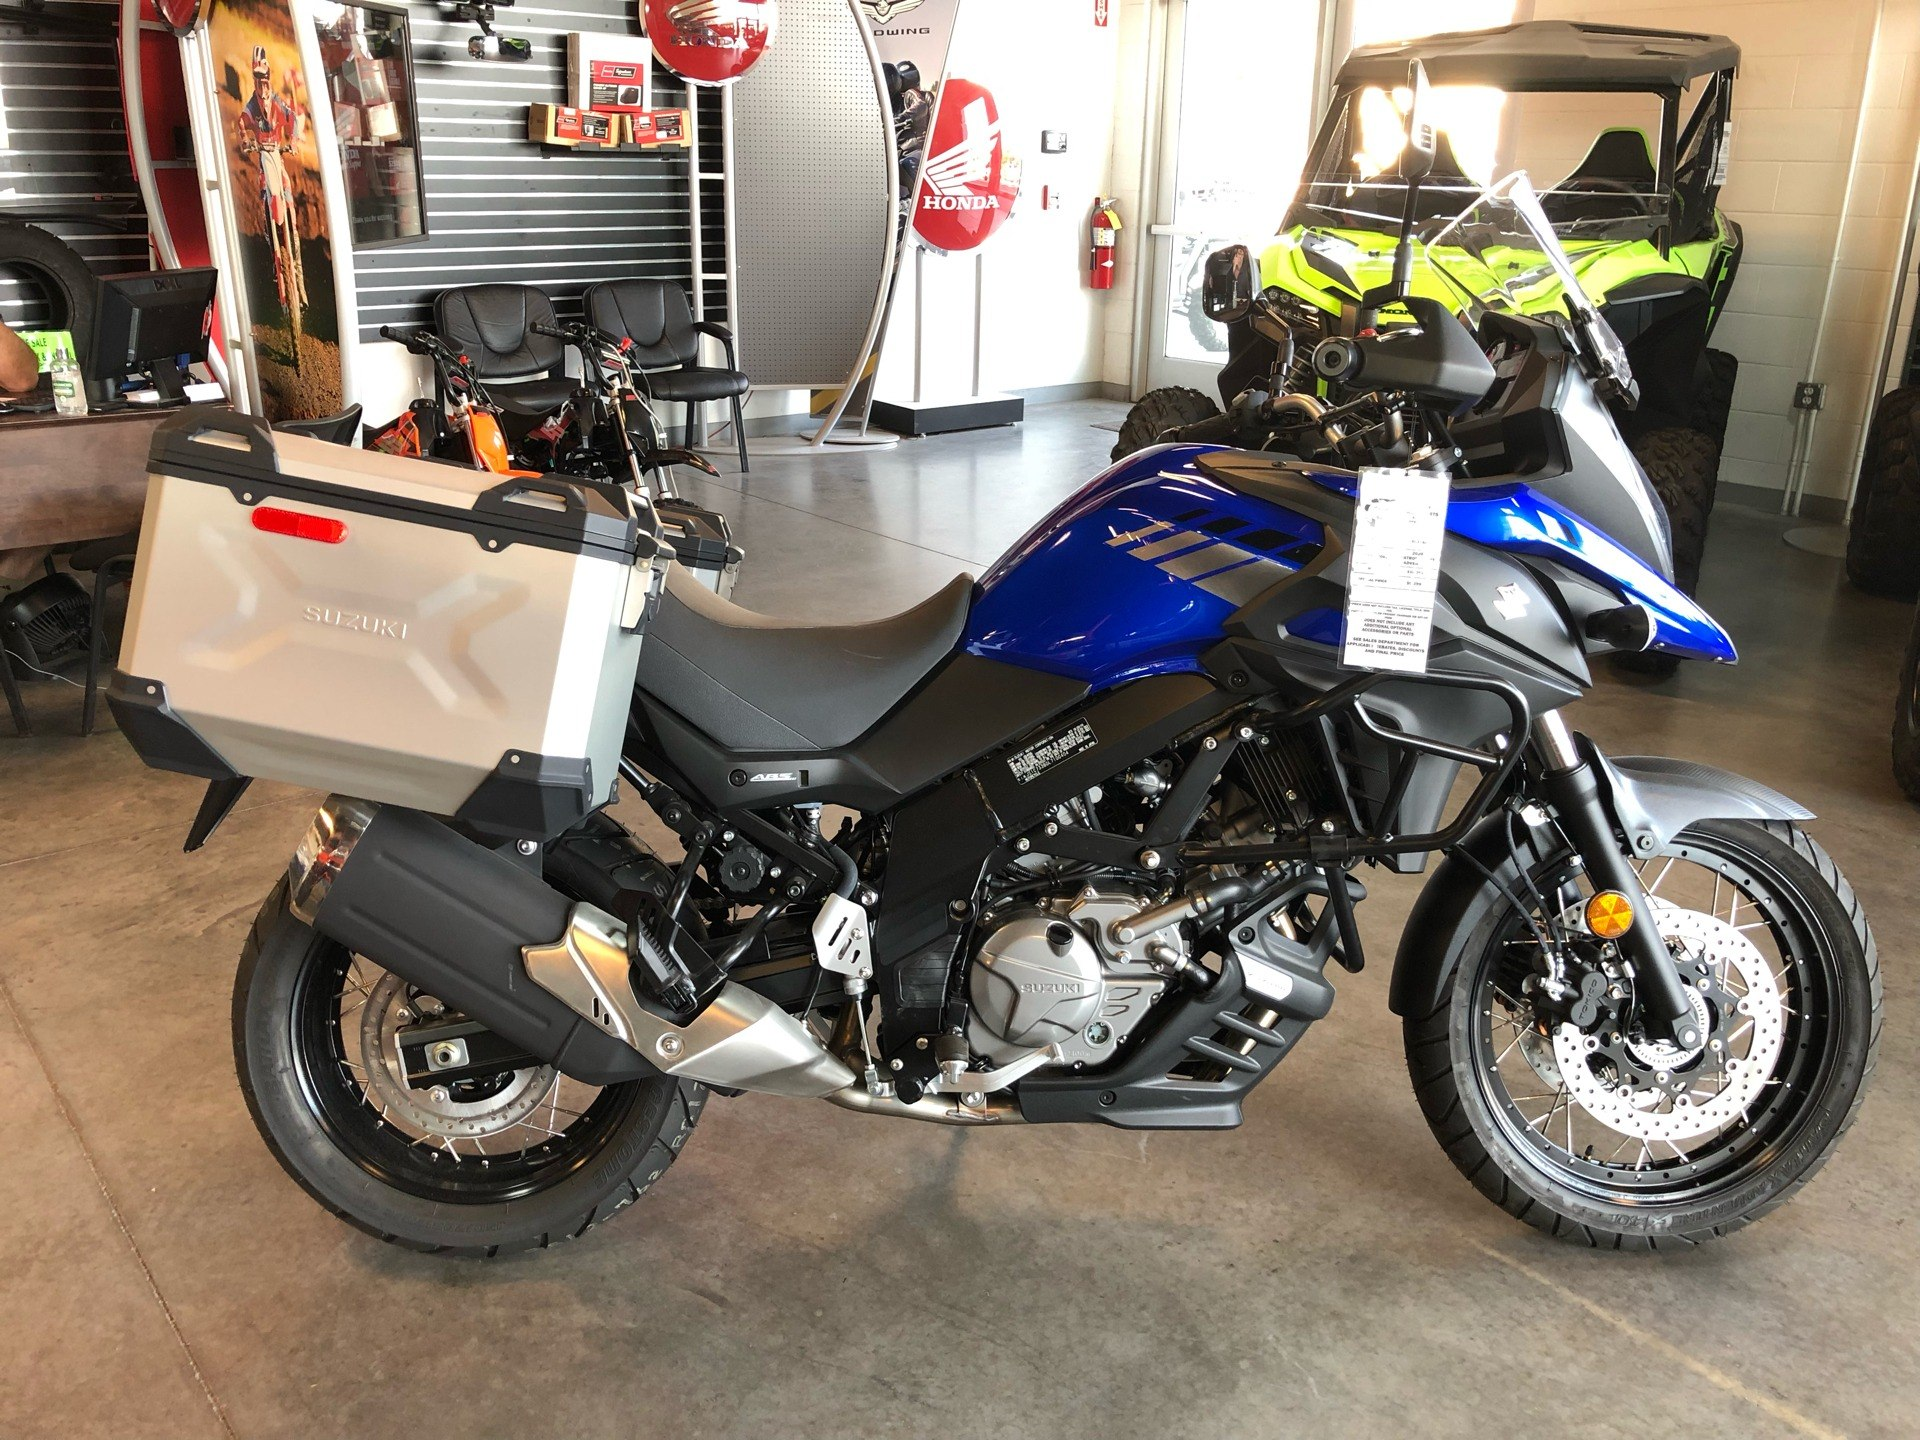 2020 Suzuki V-Strom 650XT Adventure in Saint George, Utah - Photo 6